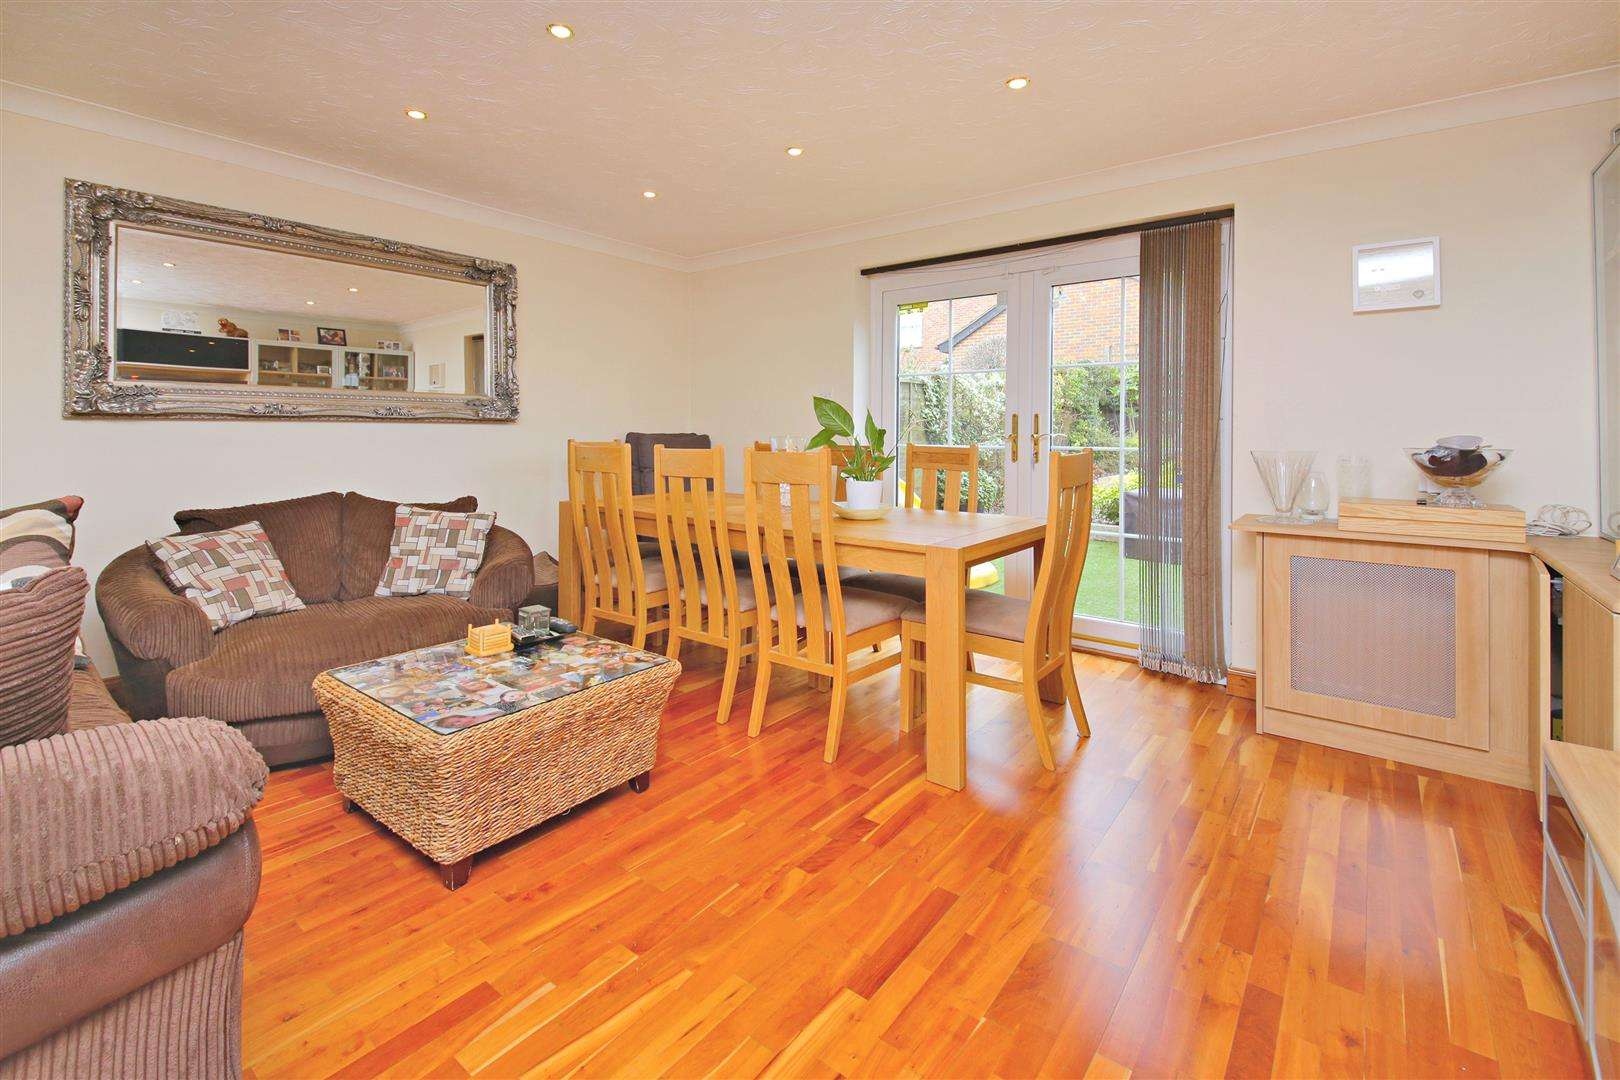 4 bed to rent in Shenley - (Property Image 2)